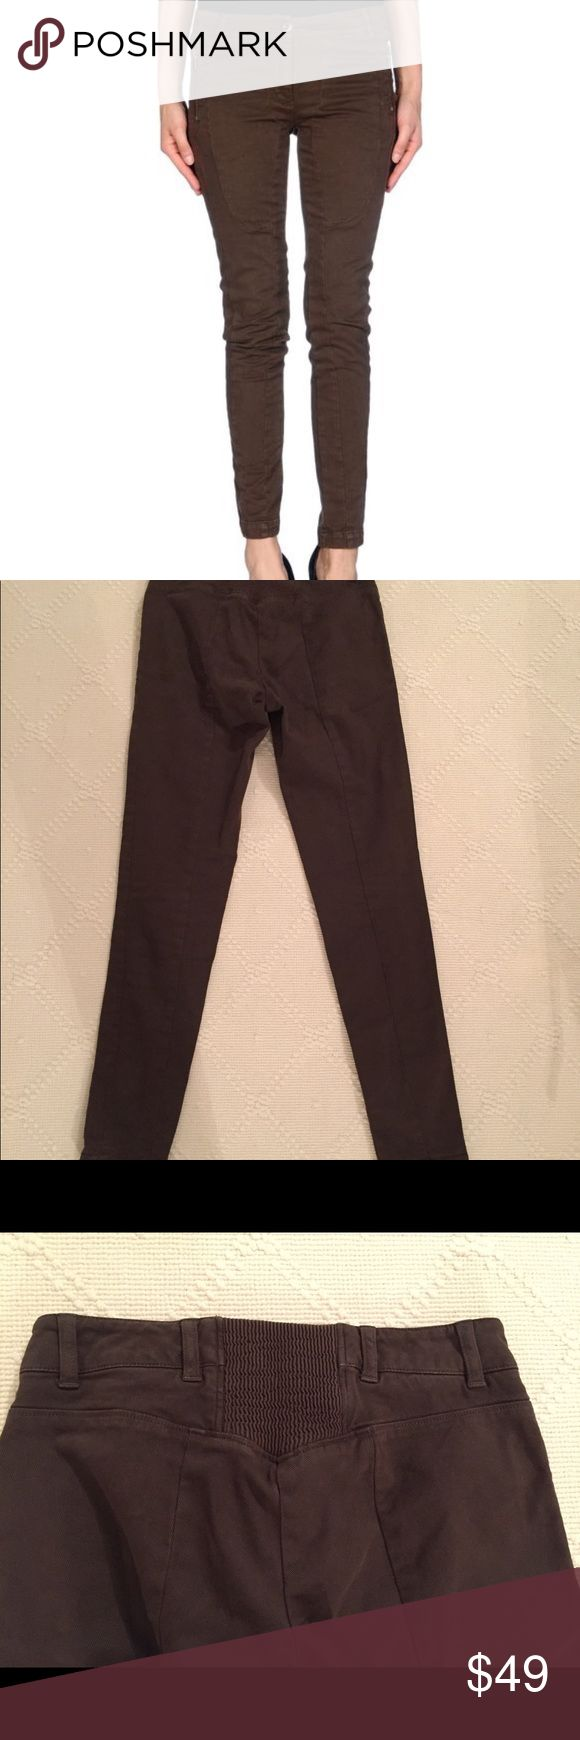 """NWOT Coast Weber & Ahaus skinny pants, 0 Italian designer pants with low waist skinny leg.  Side zip pocket.  Italian size 38.  Inseam is 28"""".  Never worn, brand new meant to keep them but don't feel like getting hemmed, willing to part coast weber & ahaus Pants Skinny"""